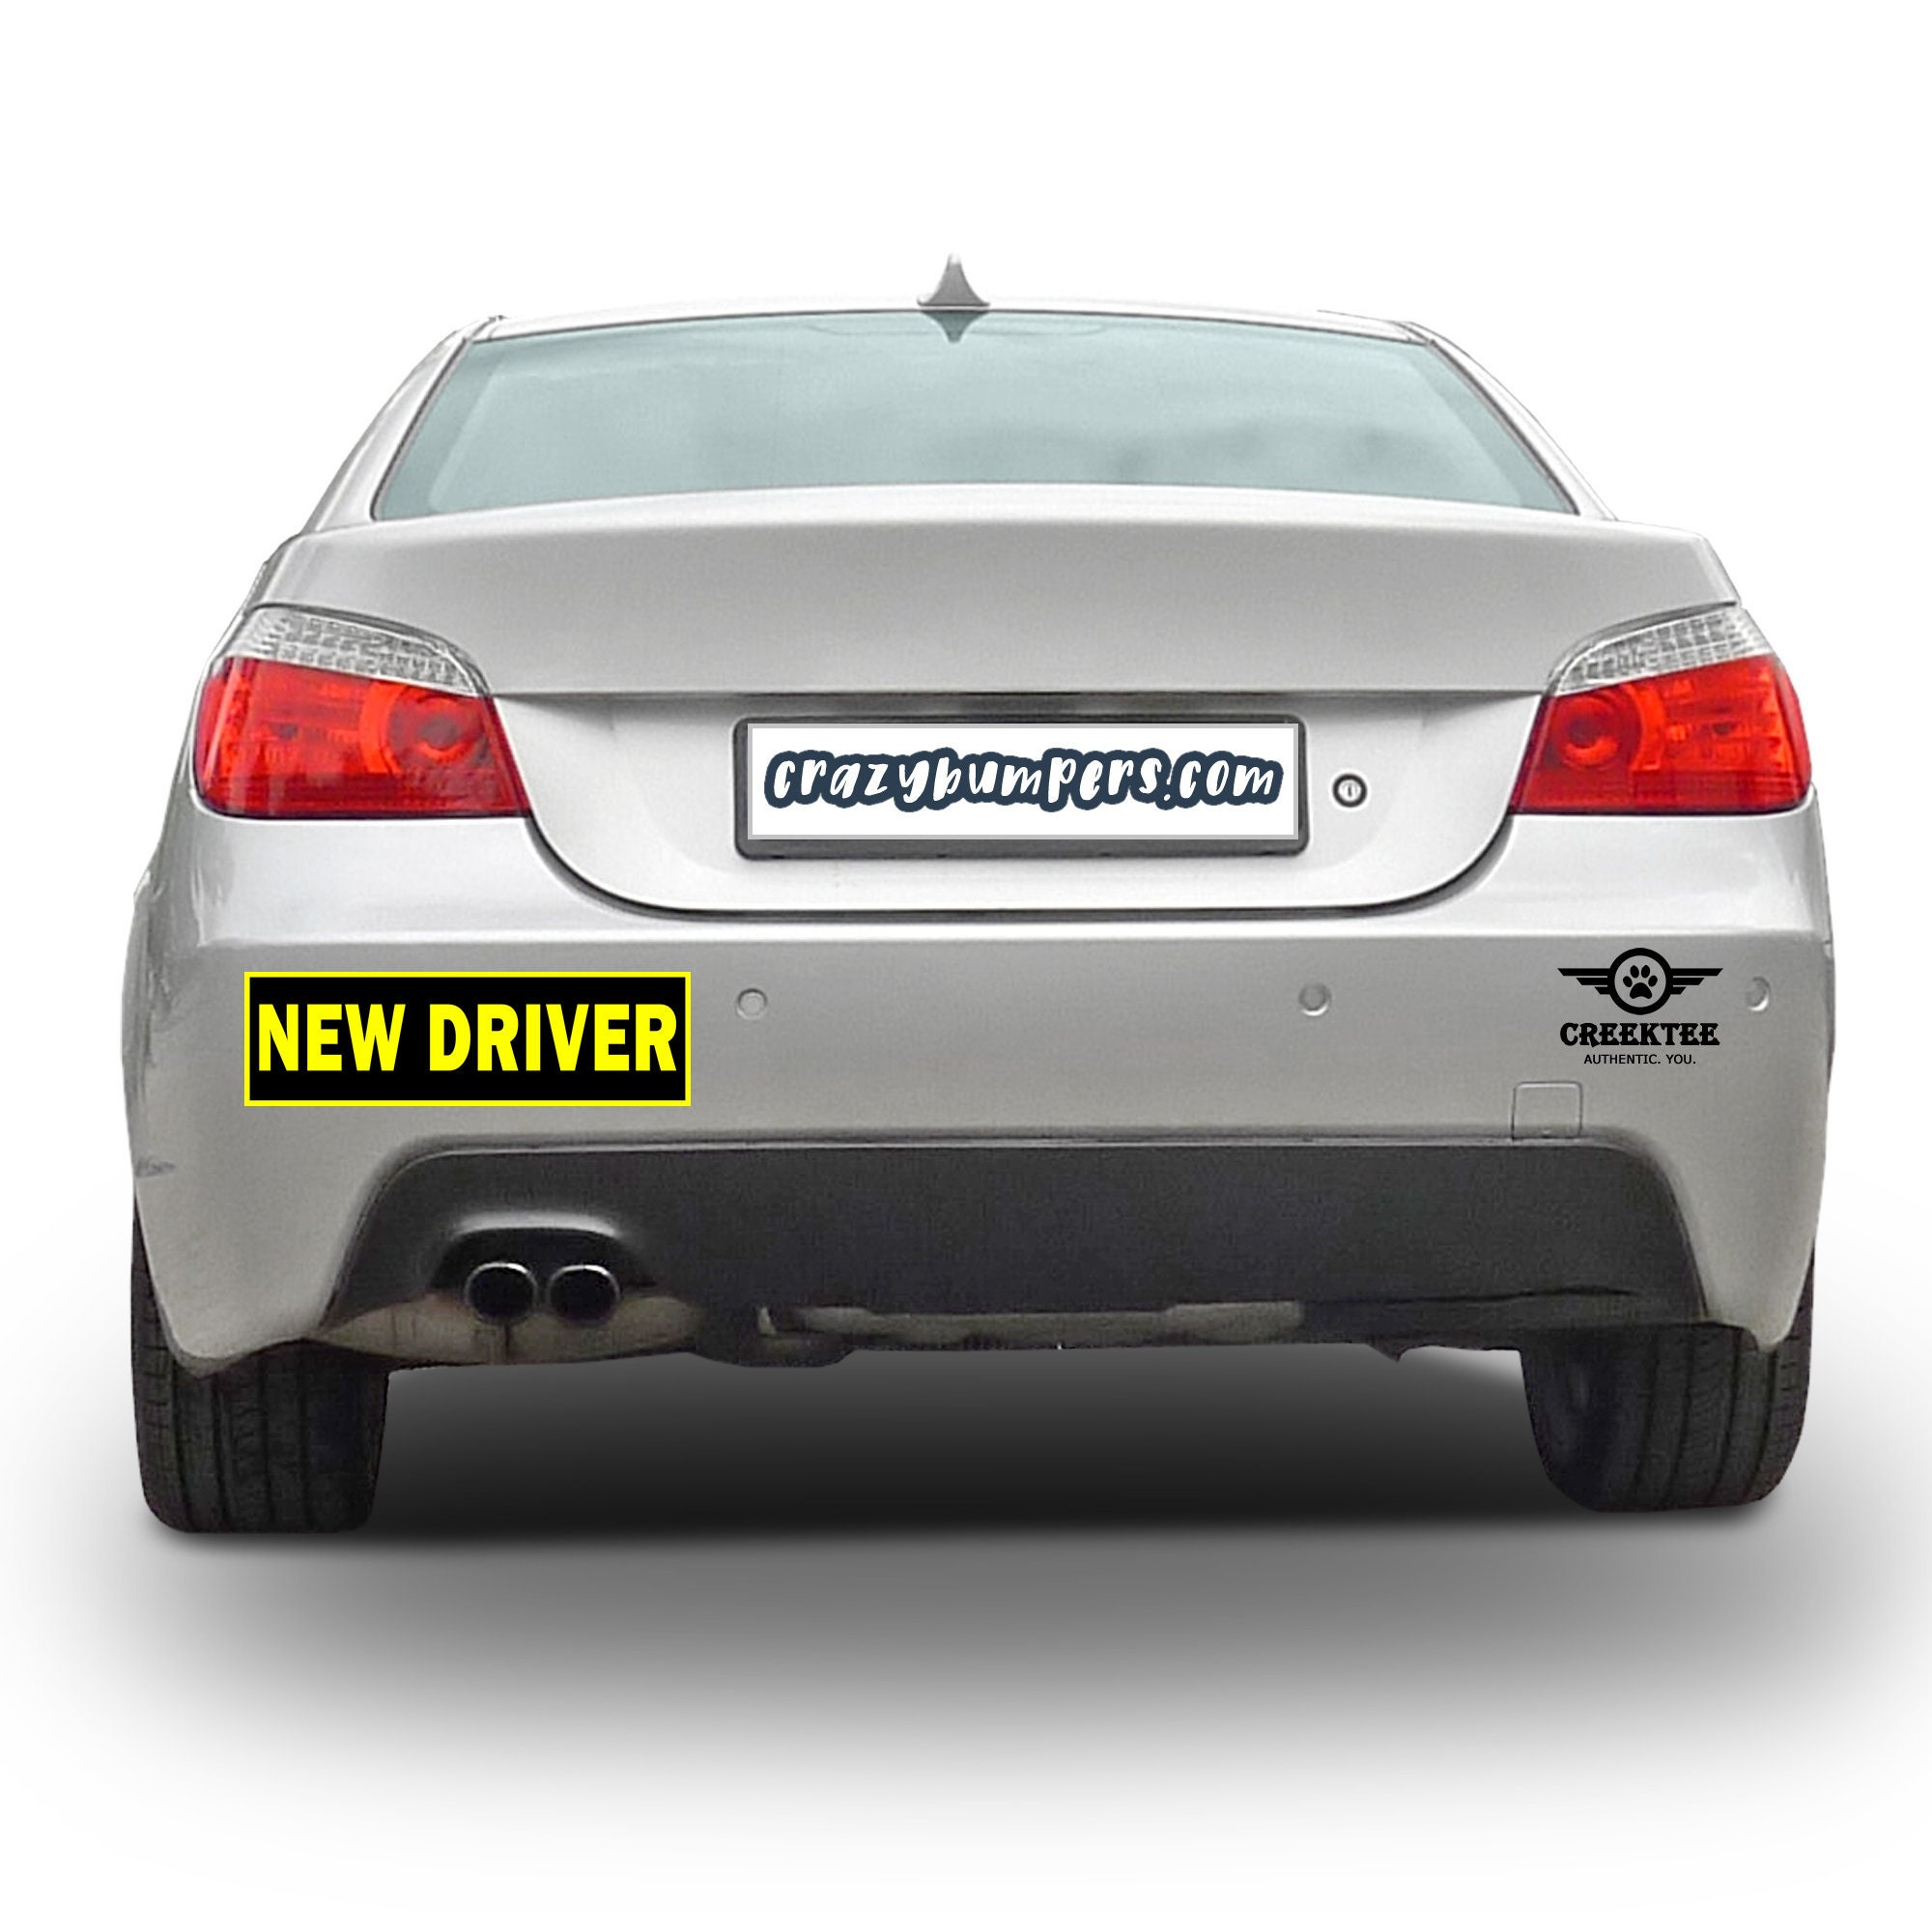 CAD$7.99 - NEW DRIVER 10 x 3 Bumper Sticker or Magnetic Bumper Available - reflective border option